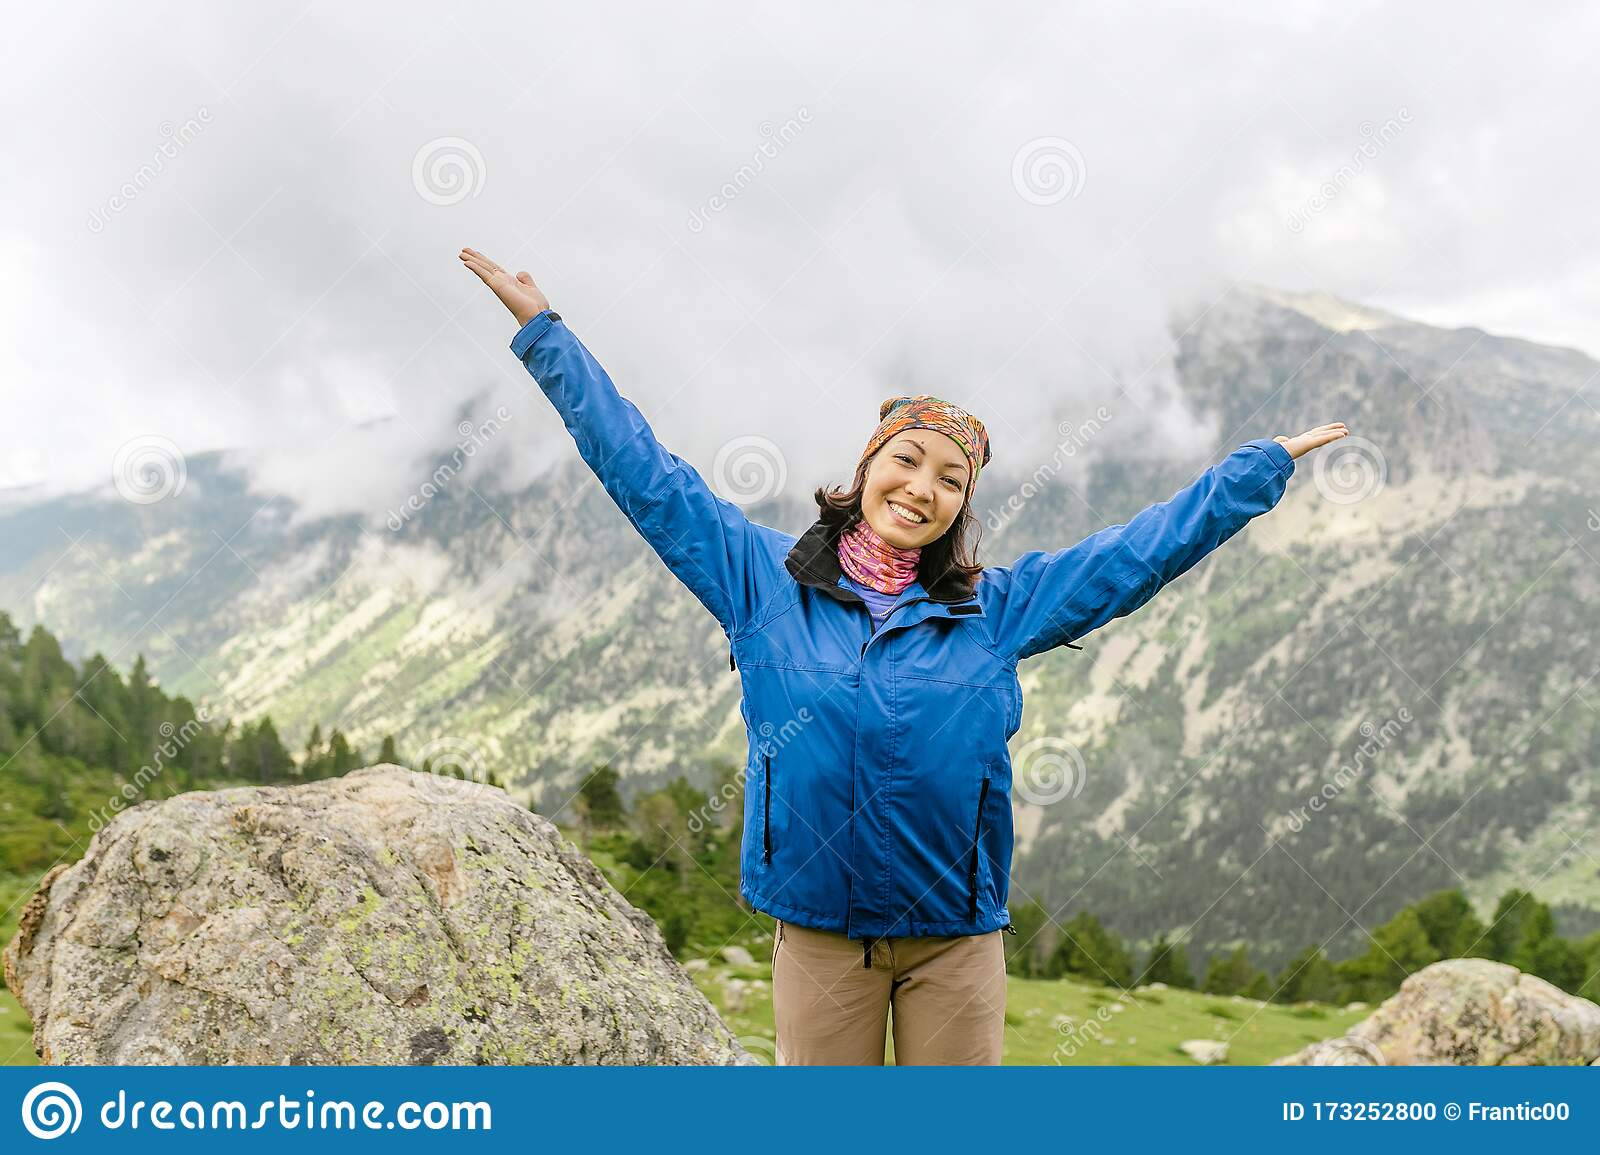 Woman Hiker Travels In Pyrenees Mountains In Andorra And Spain Nordic Walking Recreation And Trekking Along Gr11 Path Stock Photo Image Of Hike Lifestyle 173252800